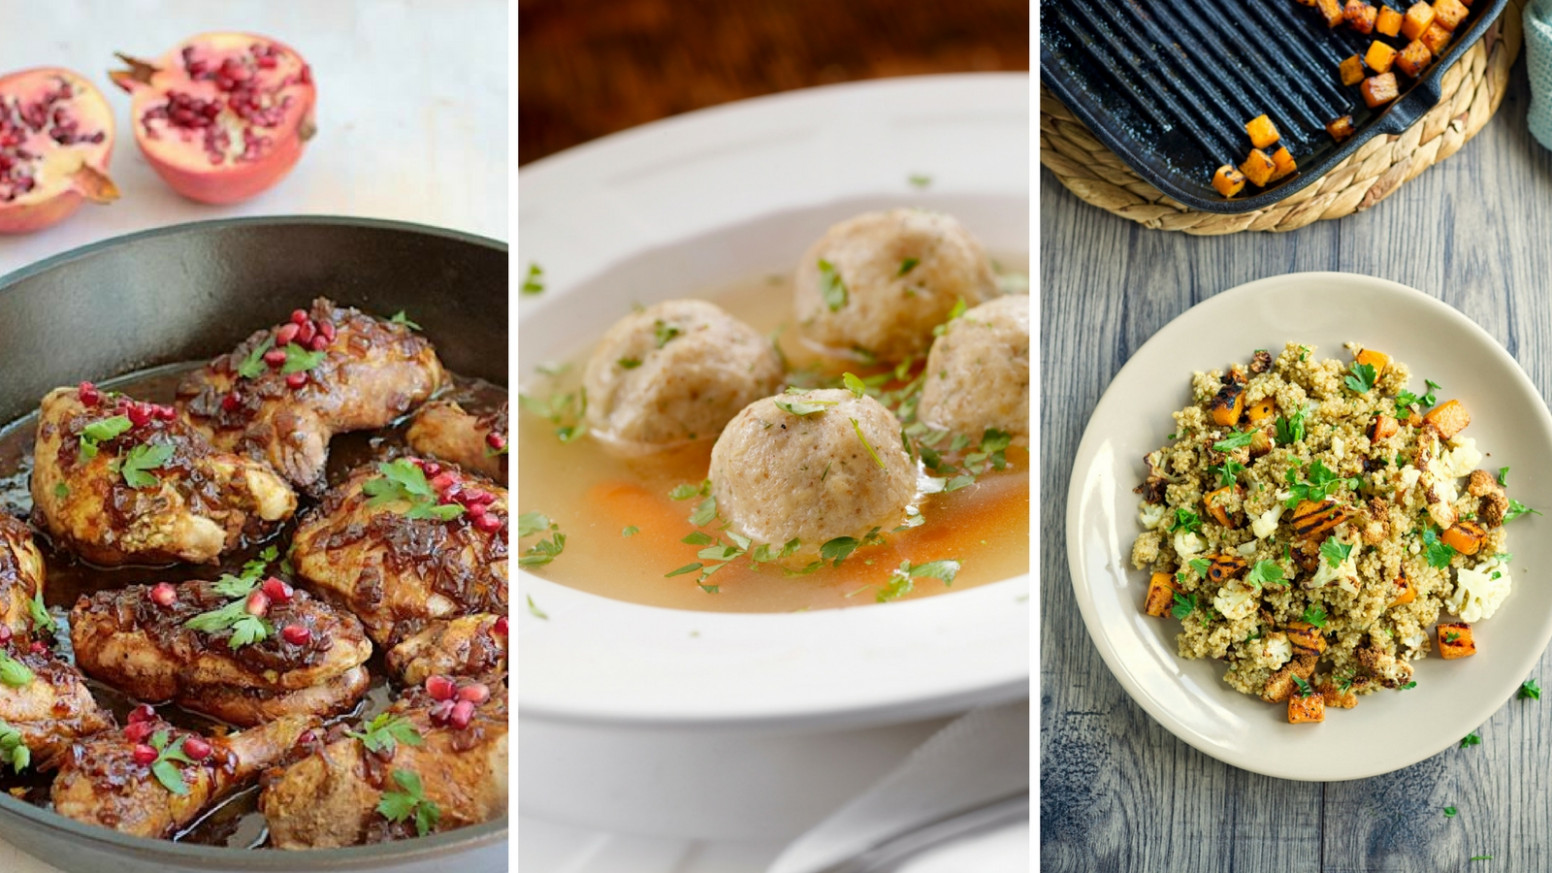 12 Gluten-Free Recipes for Rosh Hashanah | The Nosher - recipes rosh hashanah dinner